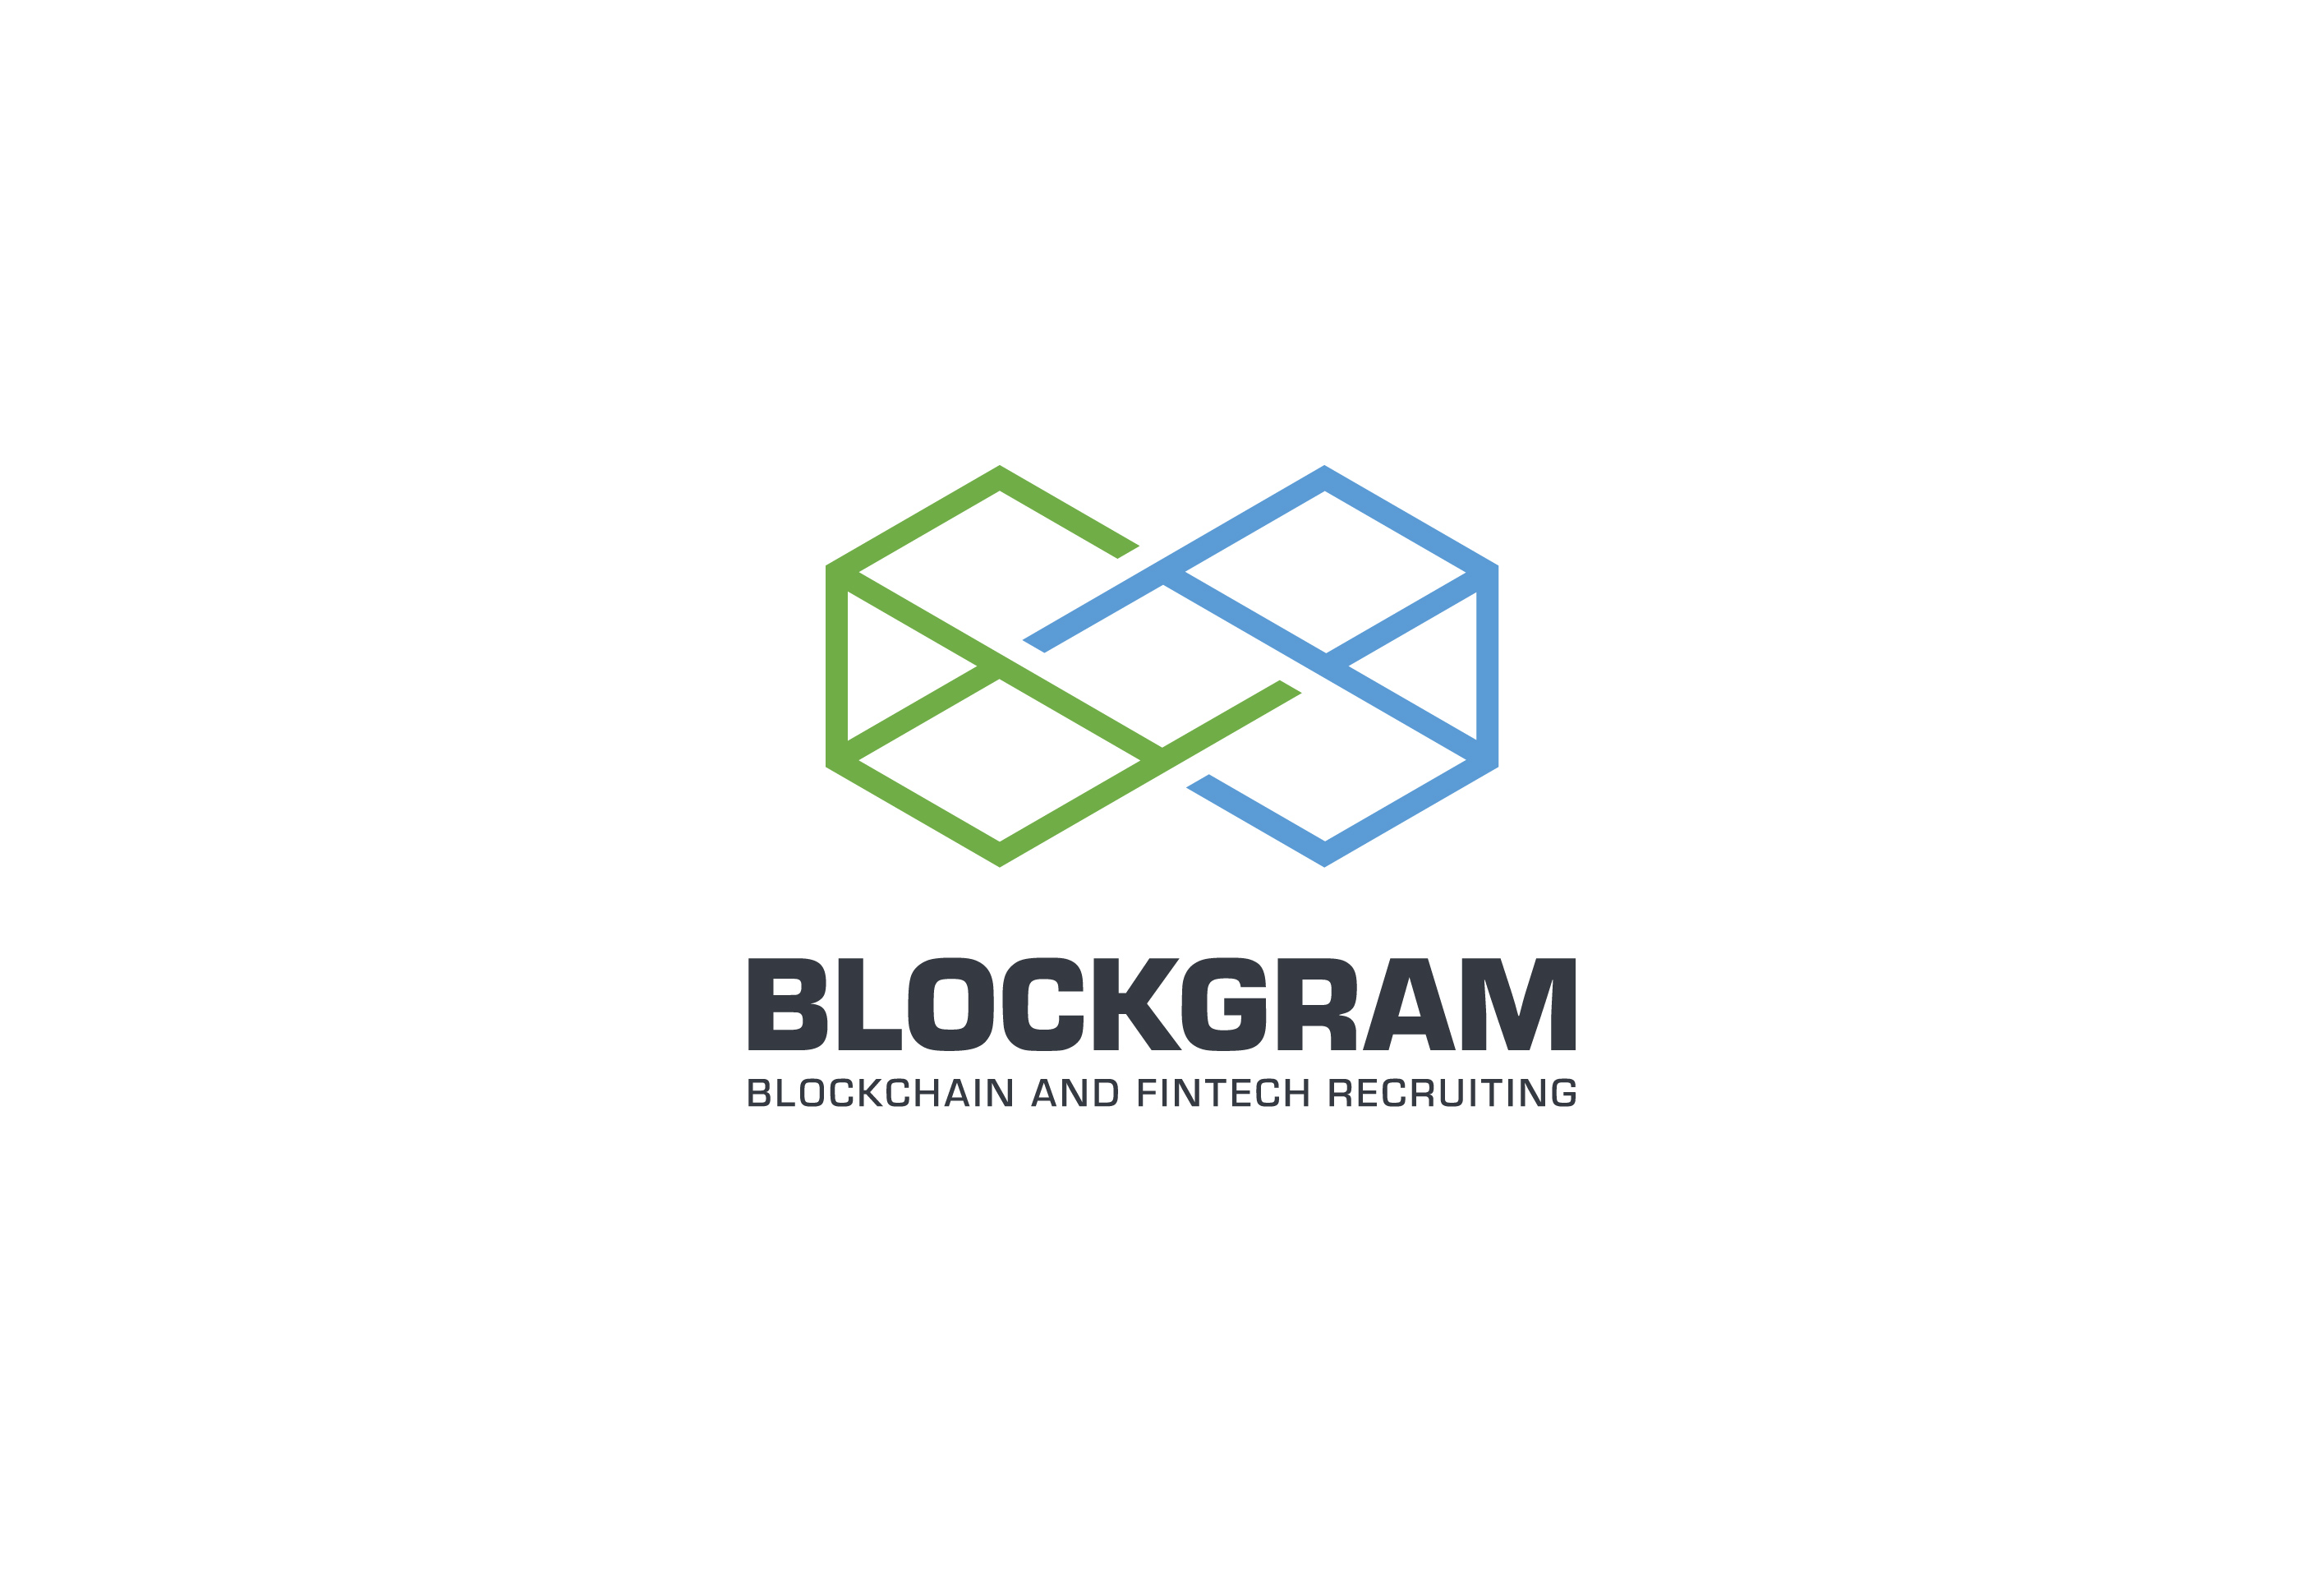 Blockgram